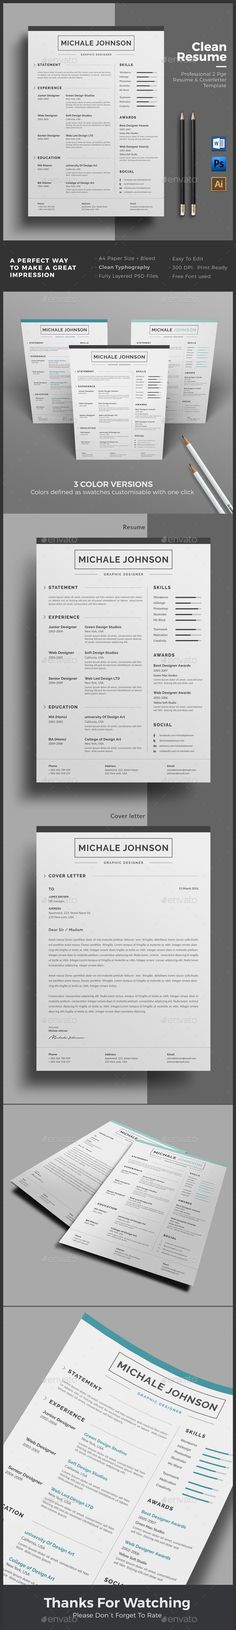 CV Word Letter size, Minimal and Template - how to make a good resume on word